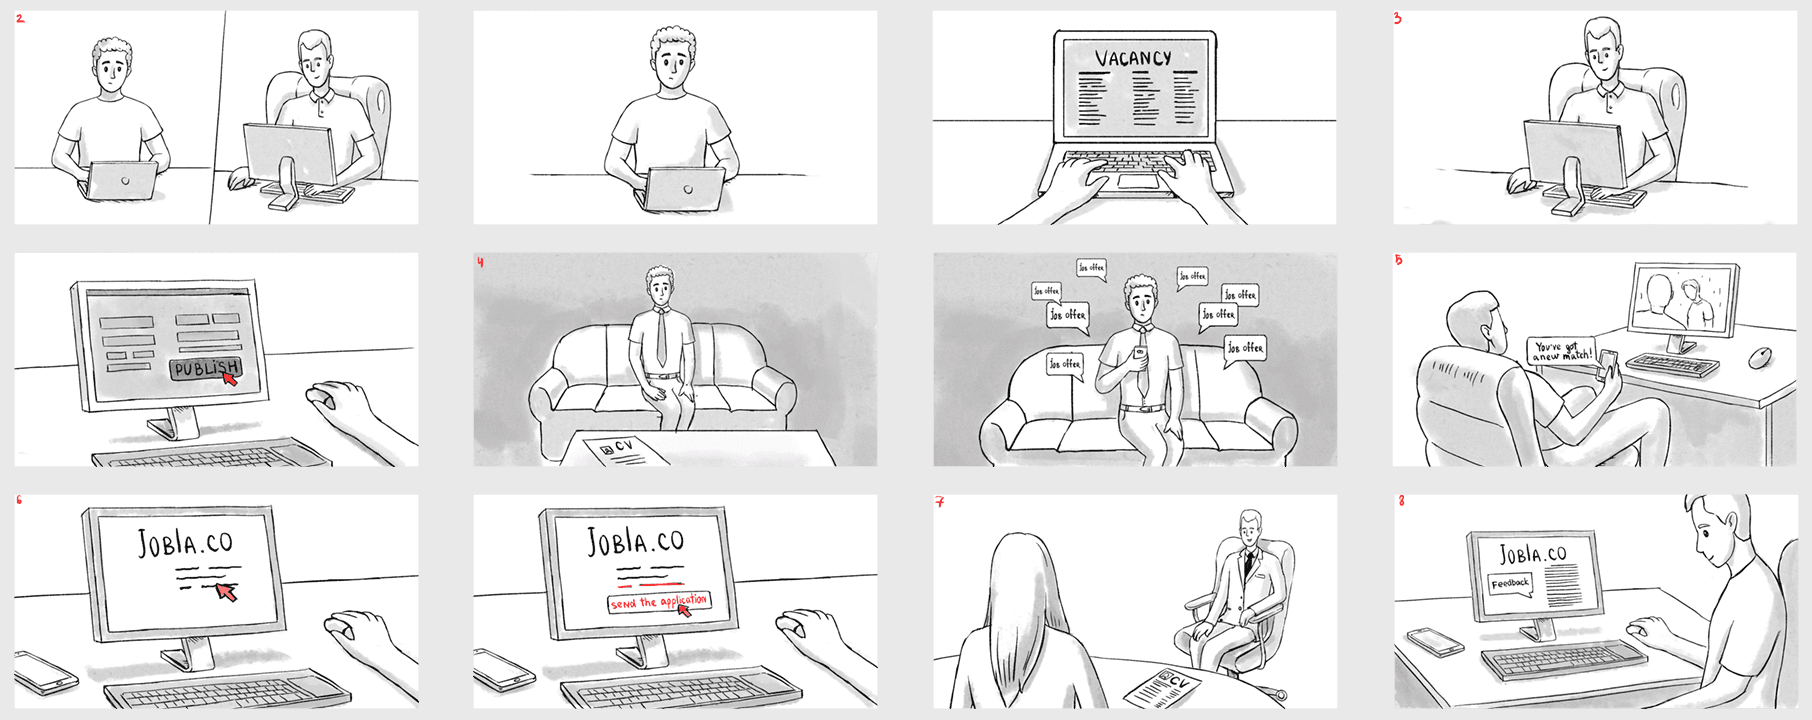 Storyboard to Jobla.co Promo Video